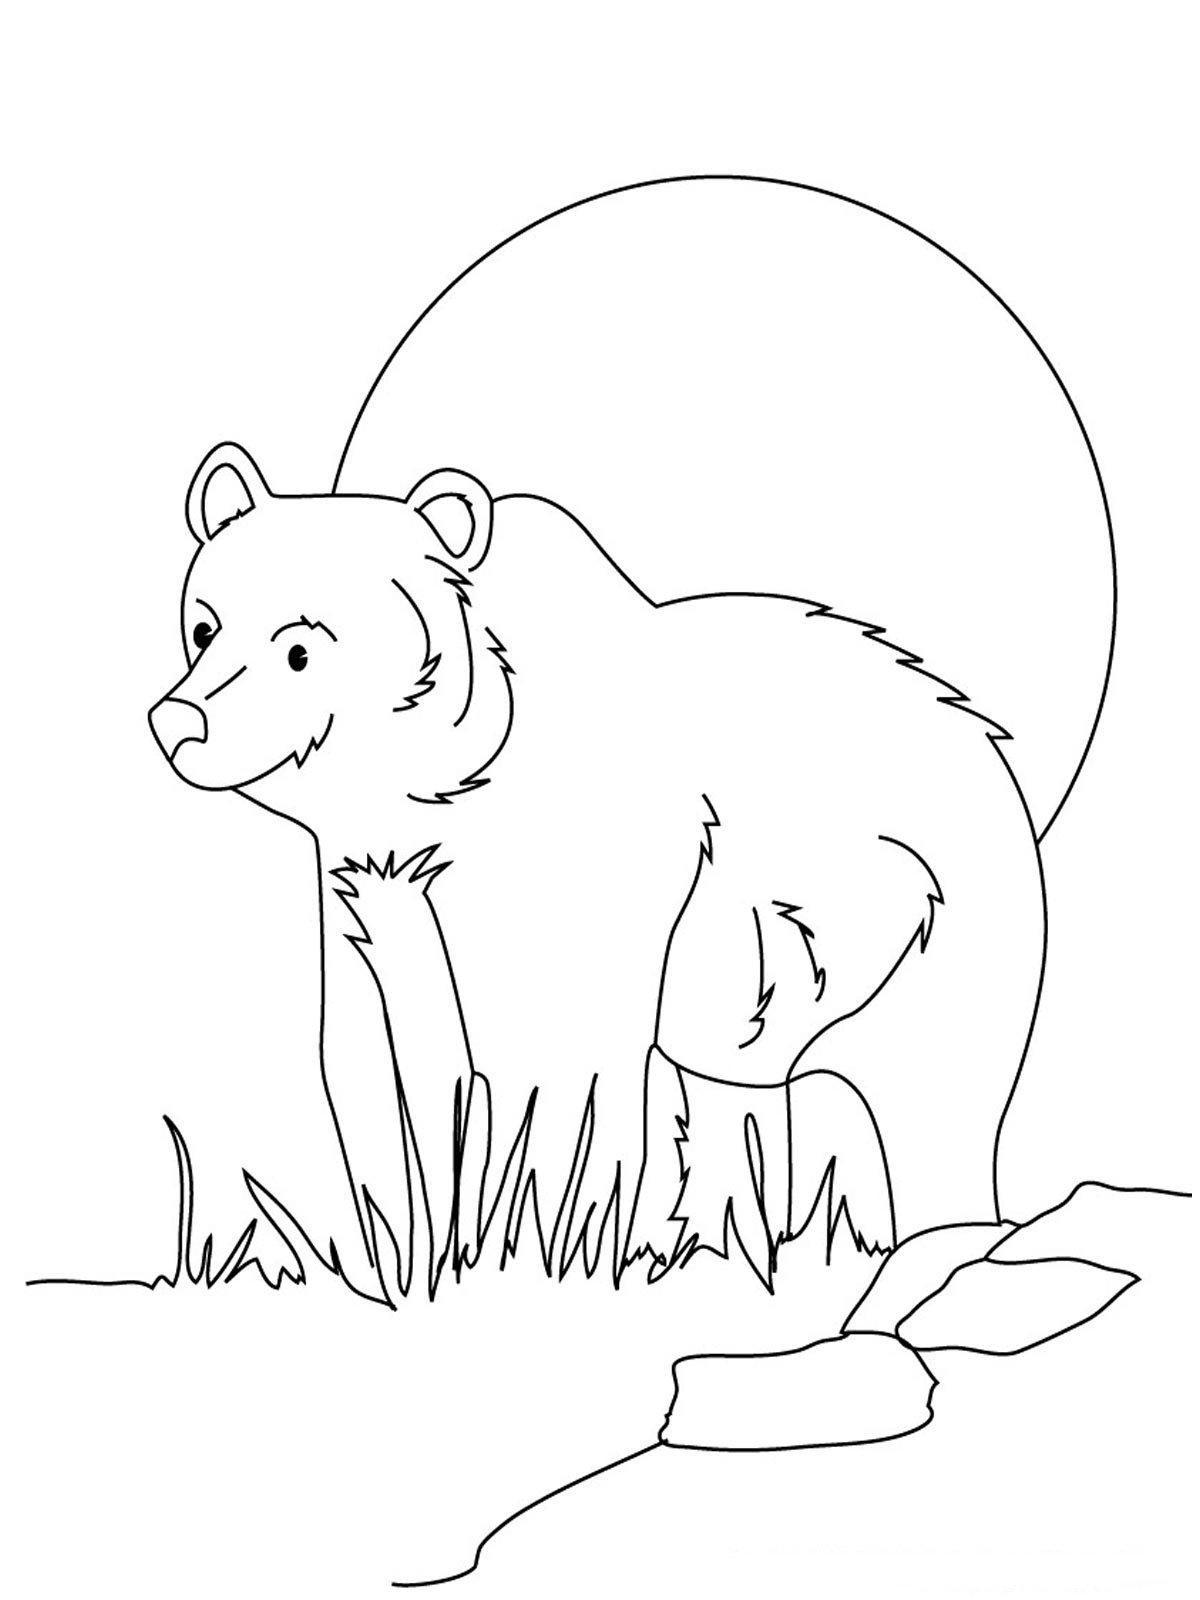 Bear Coloring Pages Realistic Realistic Coloring Pages Coloring Pages Of Bears